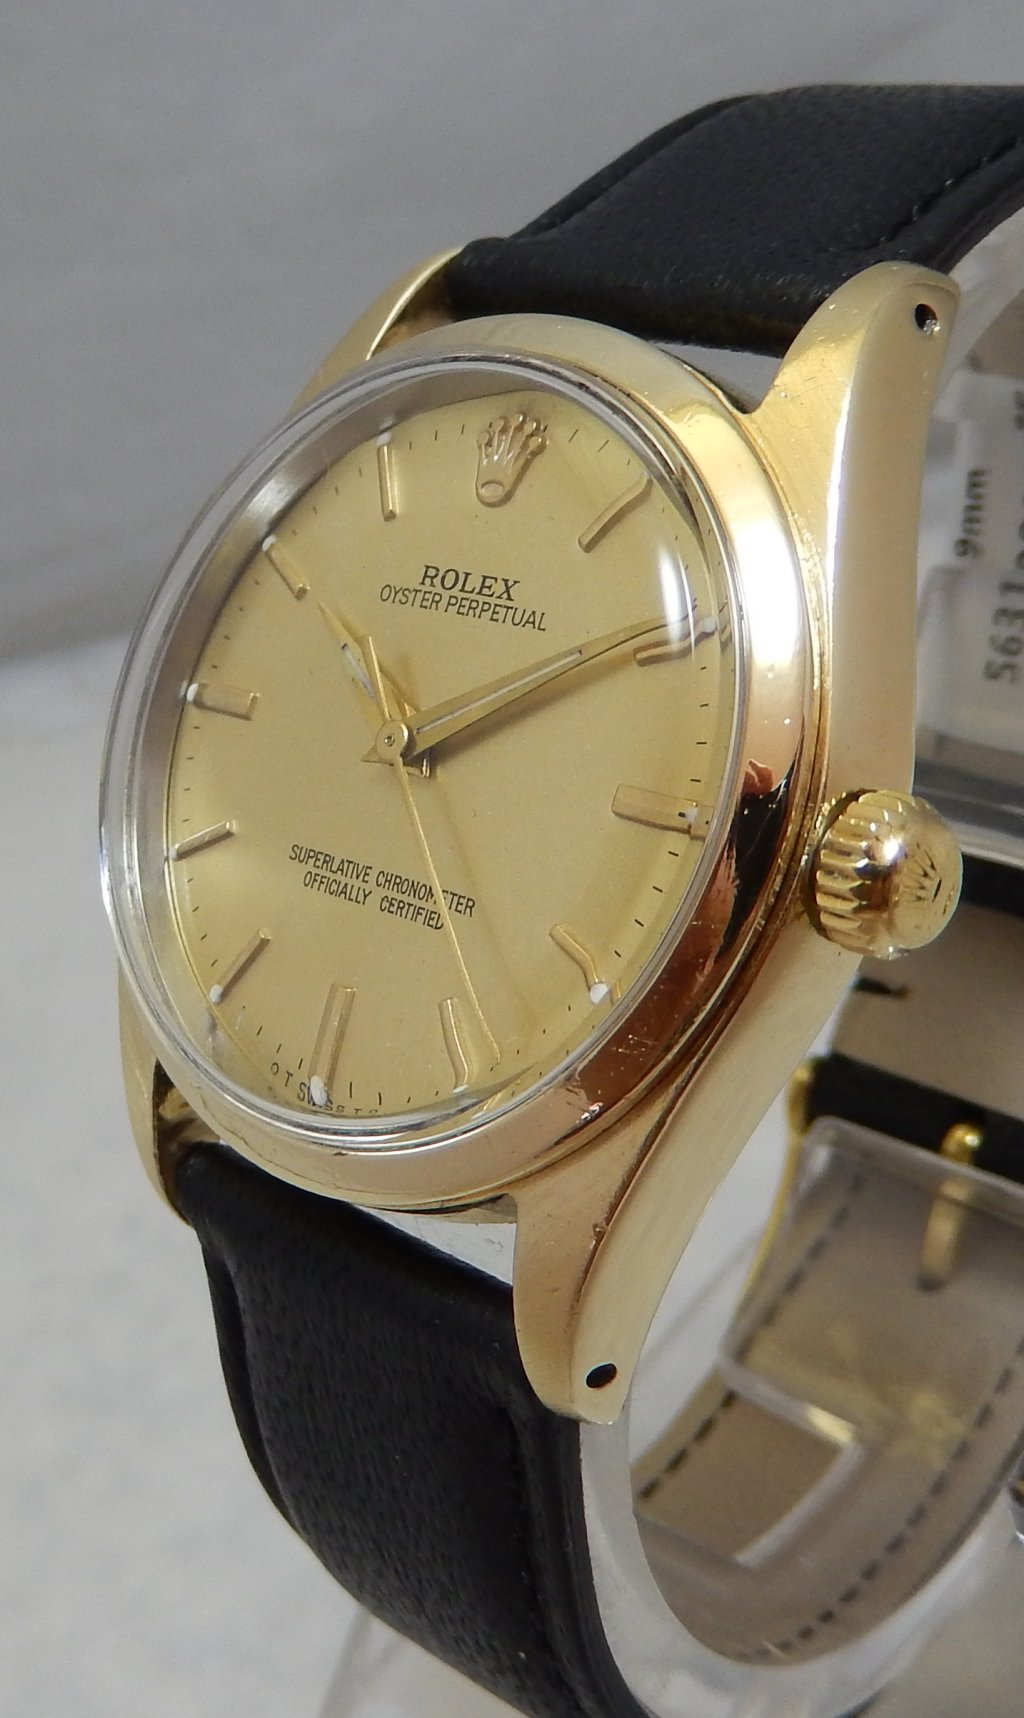 Details about Rolex Oyster Perpetual Gold Capped Model 1014 Mens Watch On  Lamb Strap 1961